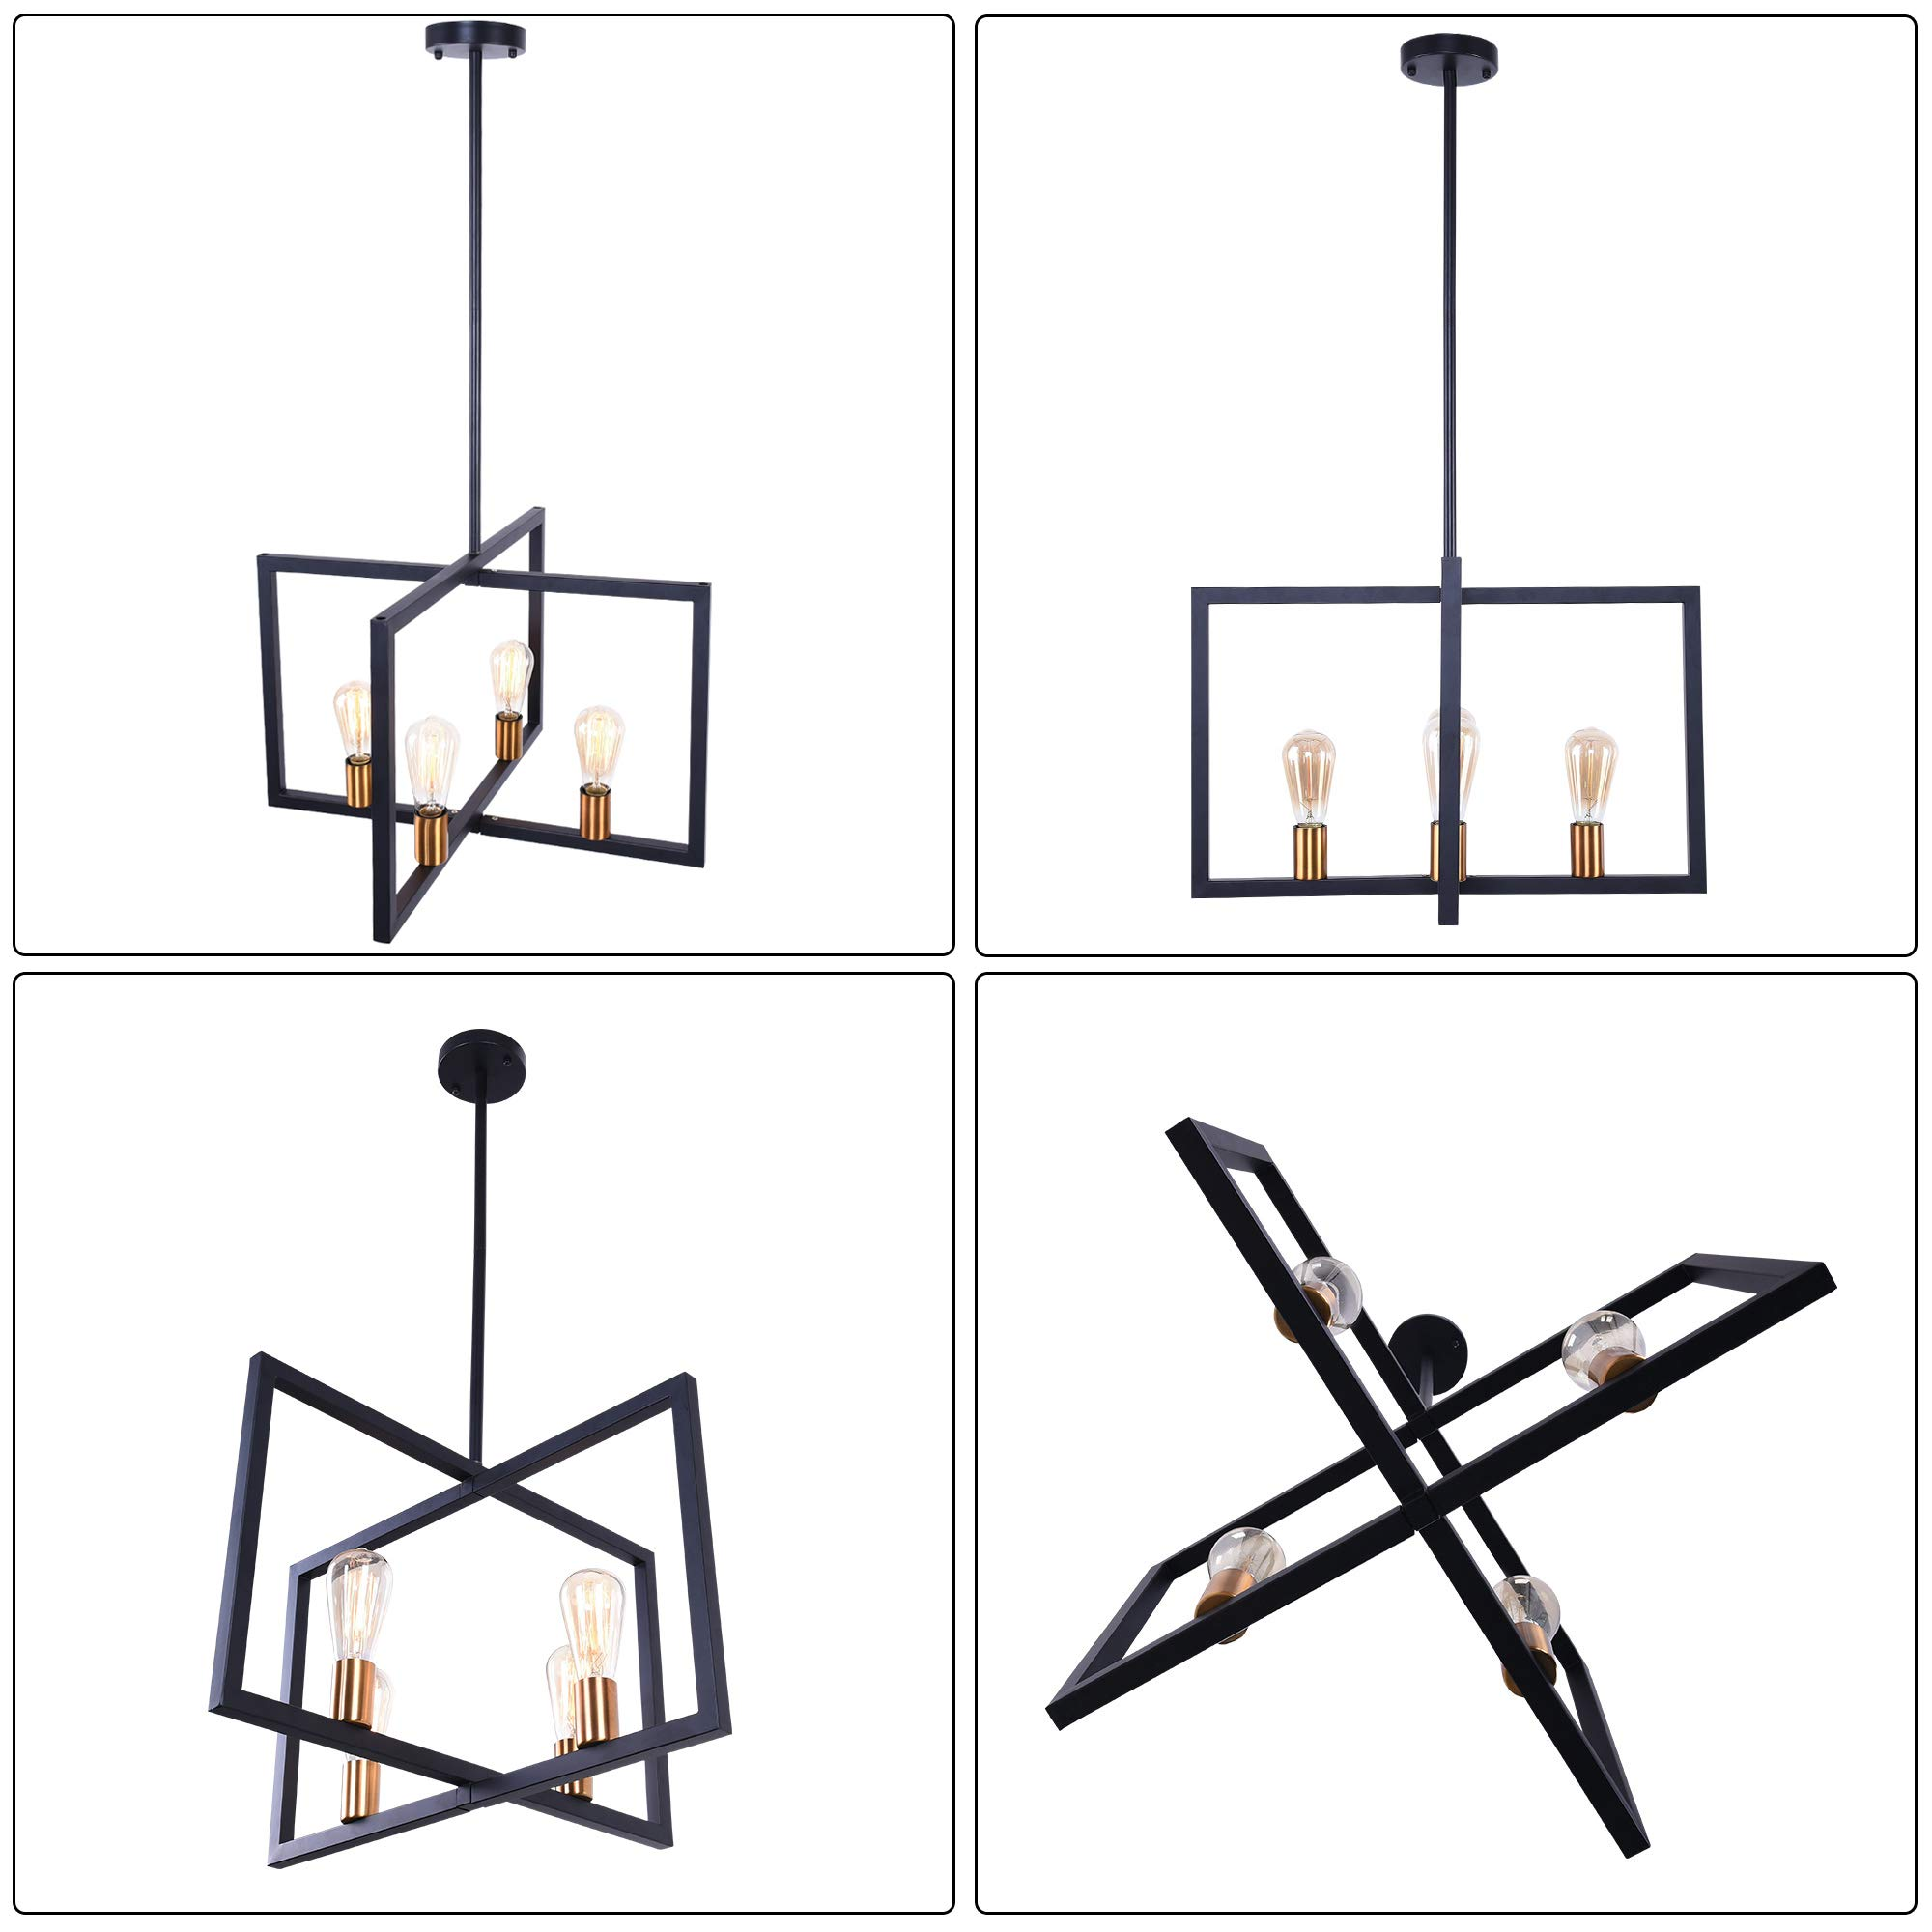 Lingkai Modern Kitchen Island Light 4-Light Chandelier Pendant Light Ceiling Lighting Fixture Industrial Matte Black with Antique Brass Finish by Lingkai (Image #3)